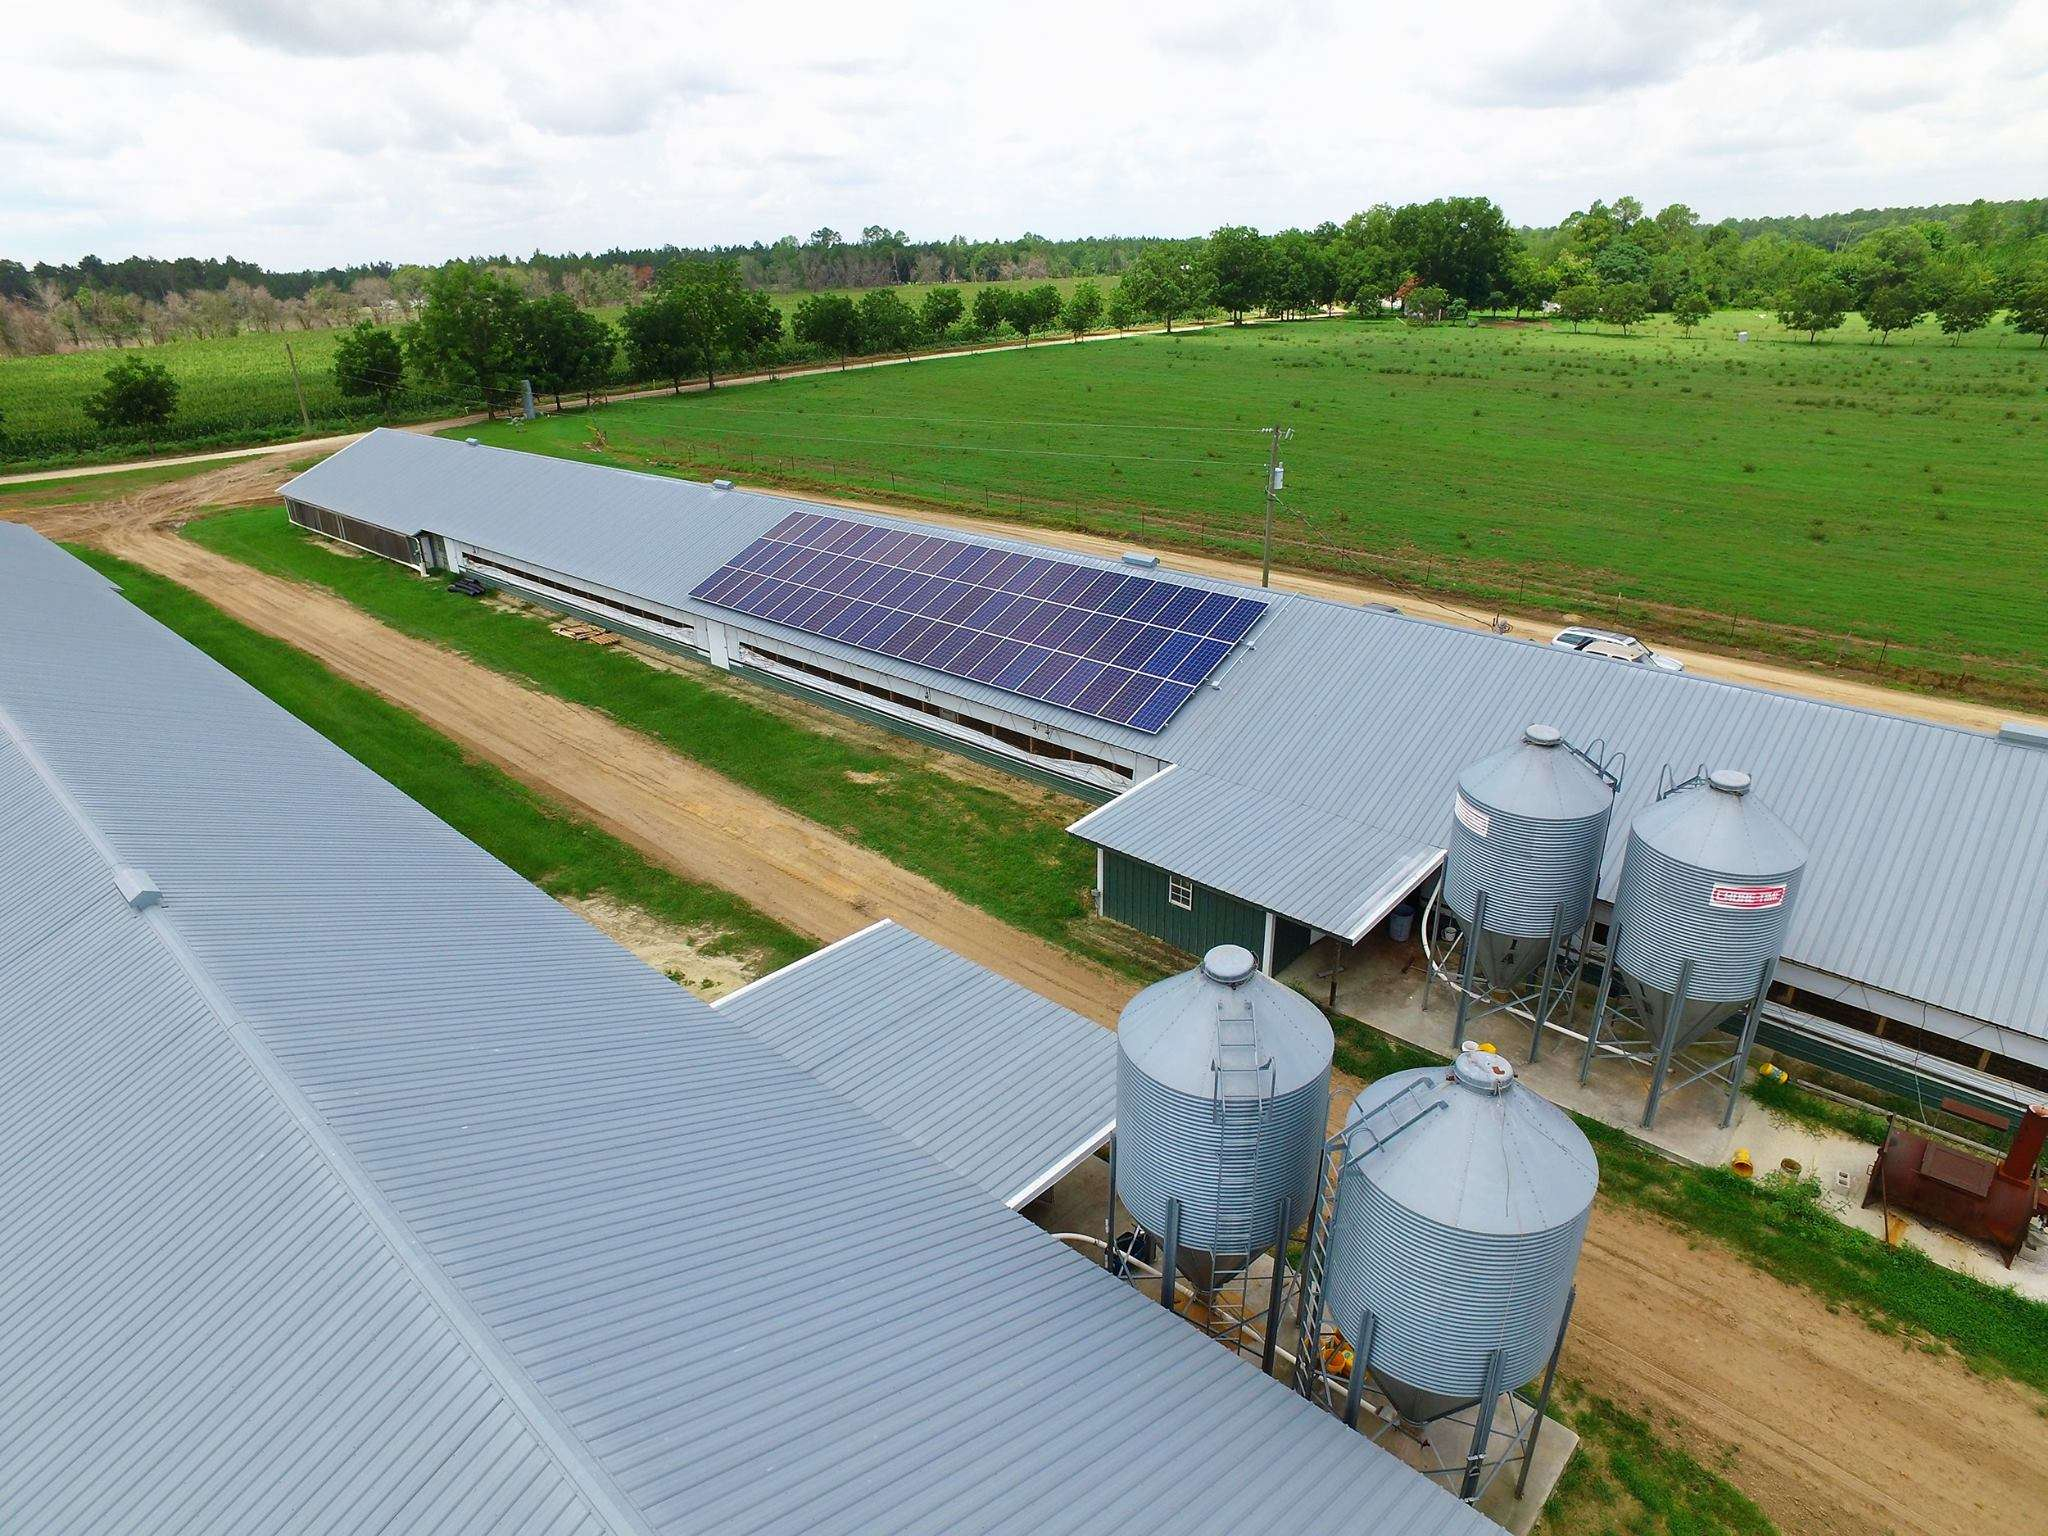 kennedy farms solar project - solar panels on poultry barn